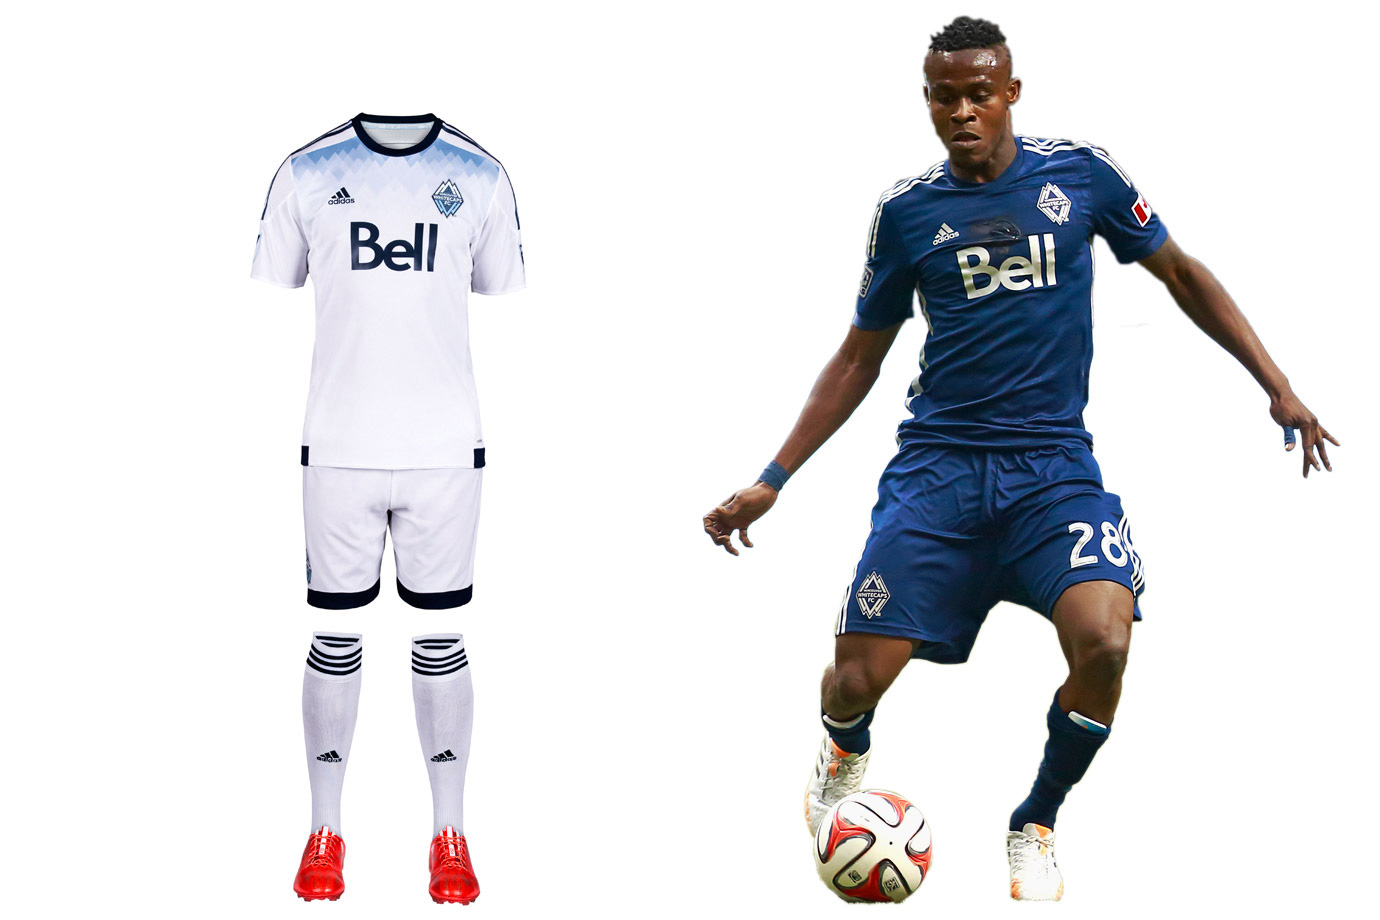 Vancouver Whitecaps Uniform